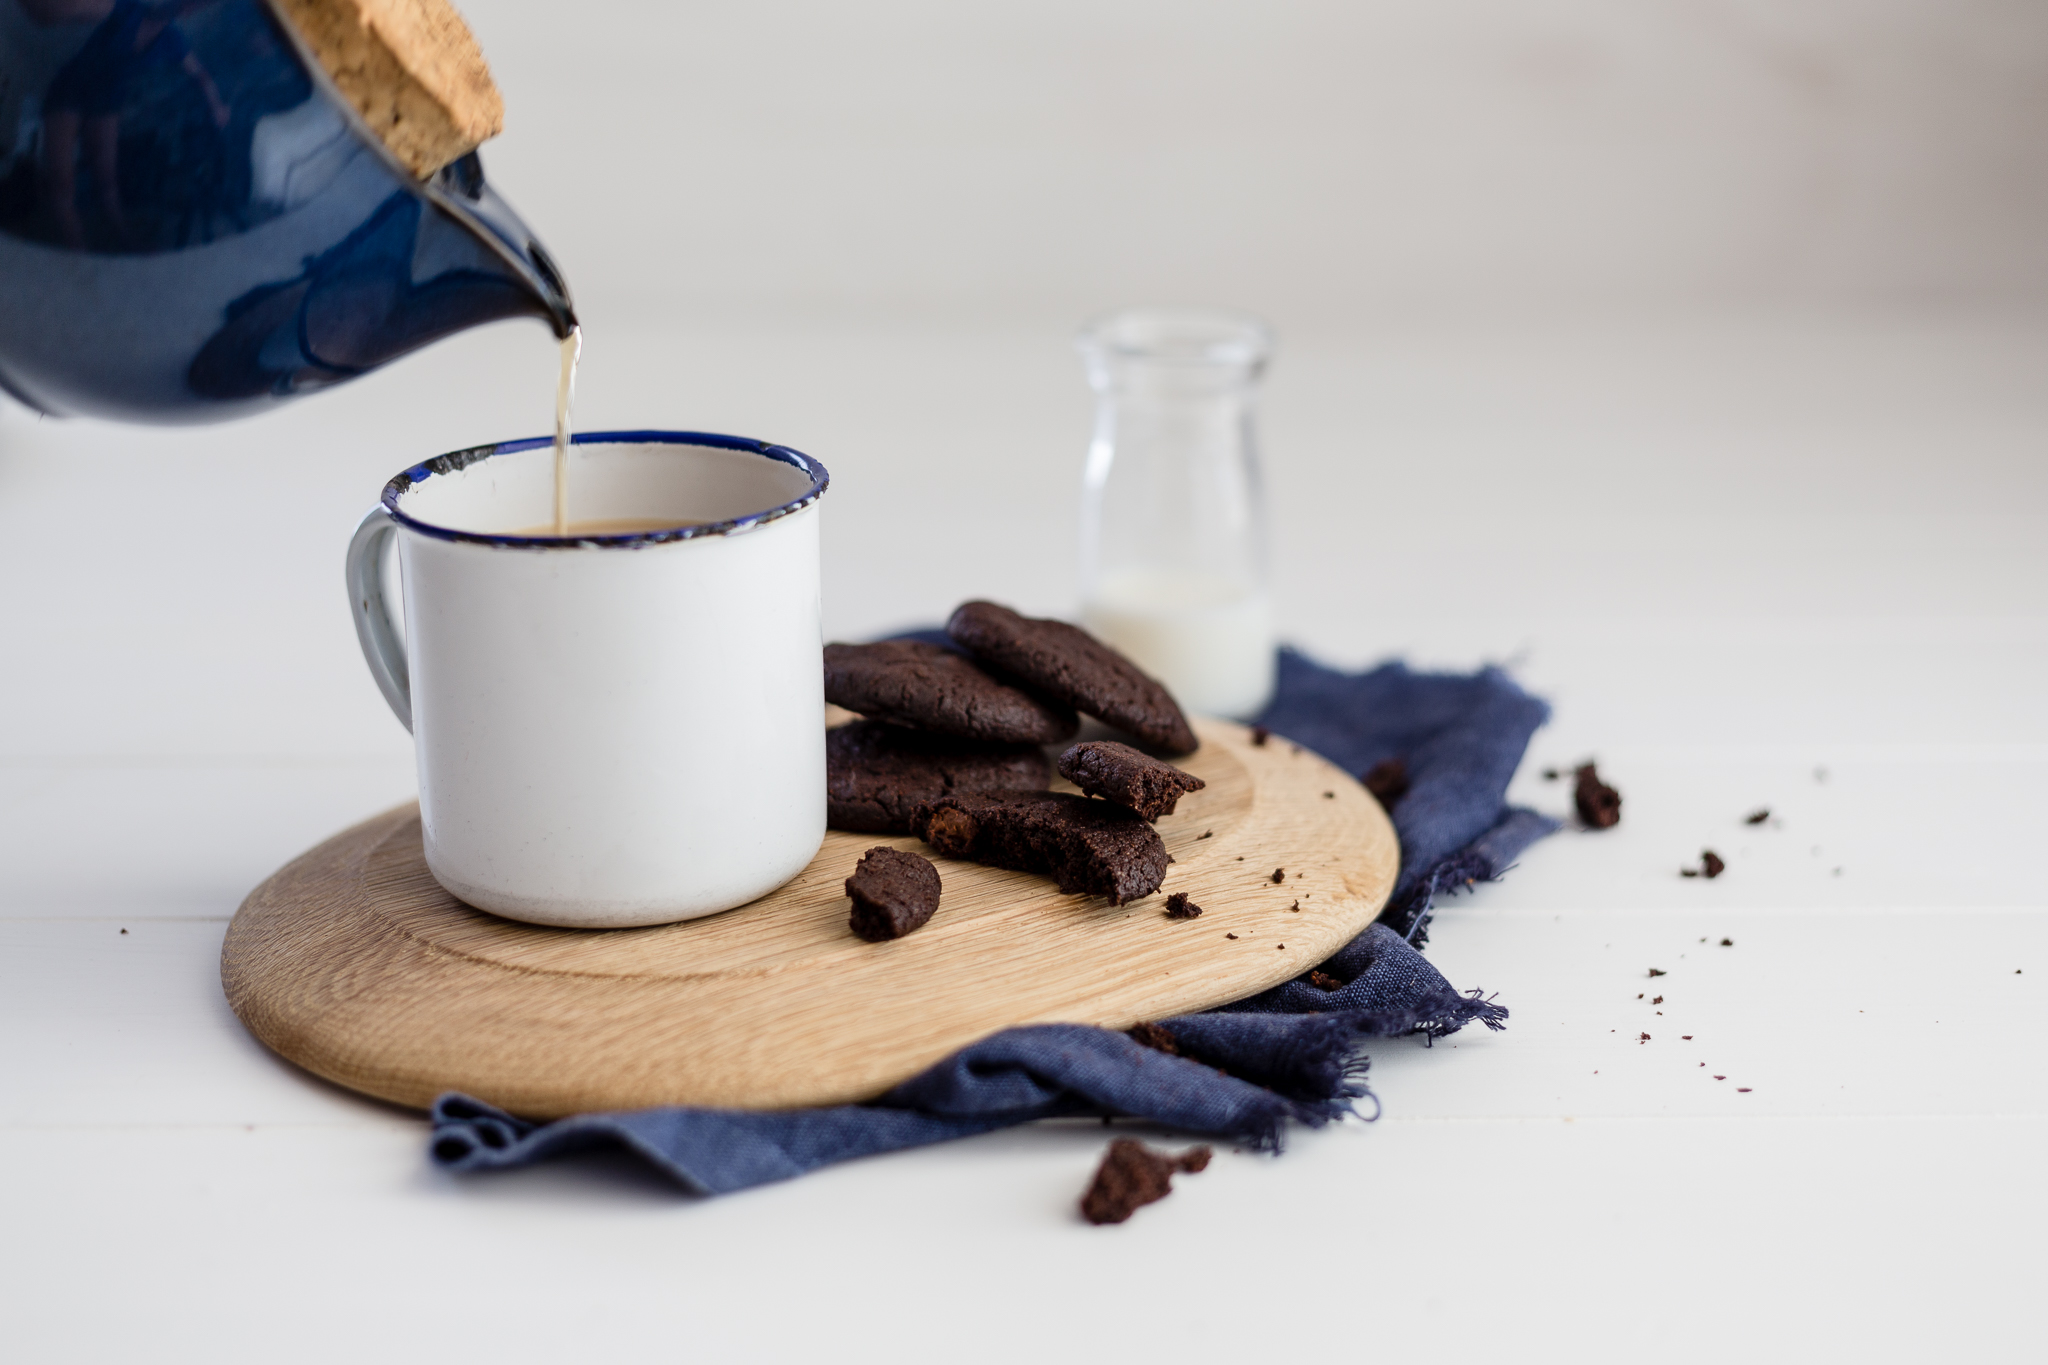 margaretriver-perth-food-photographer-stocked-foods-chocolate-biscuit-1